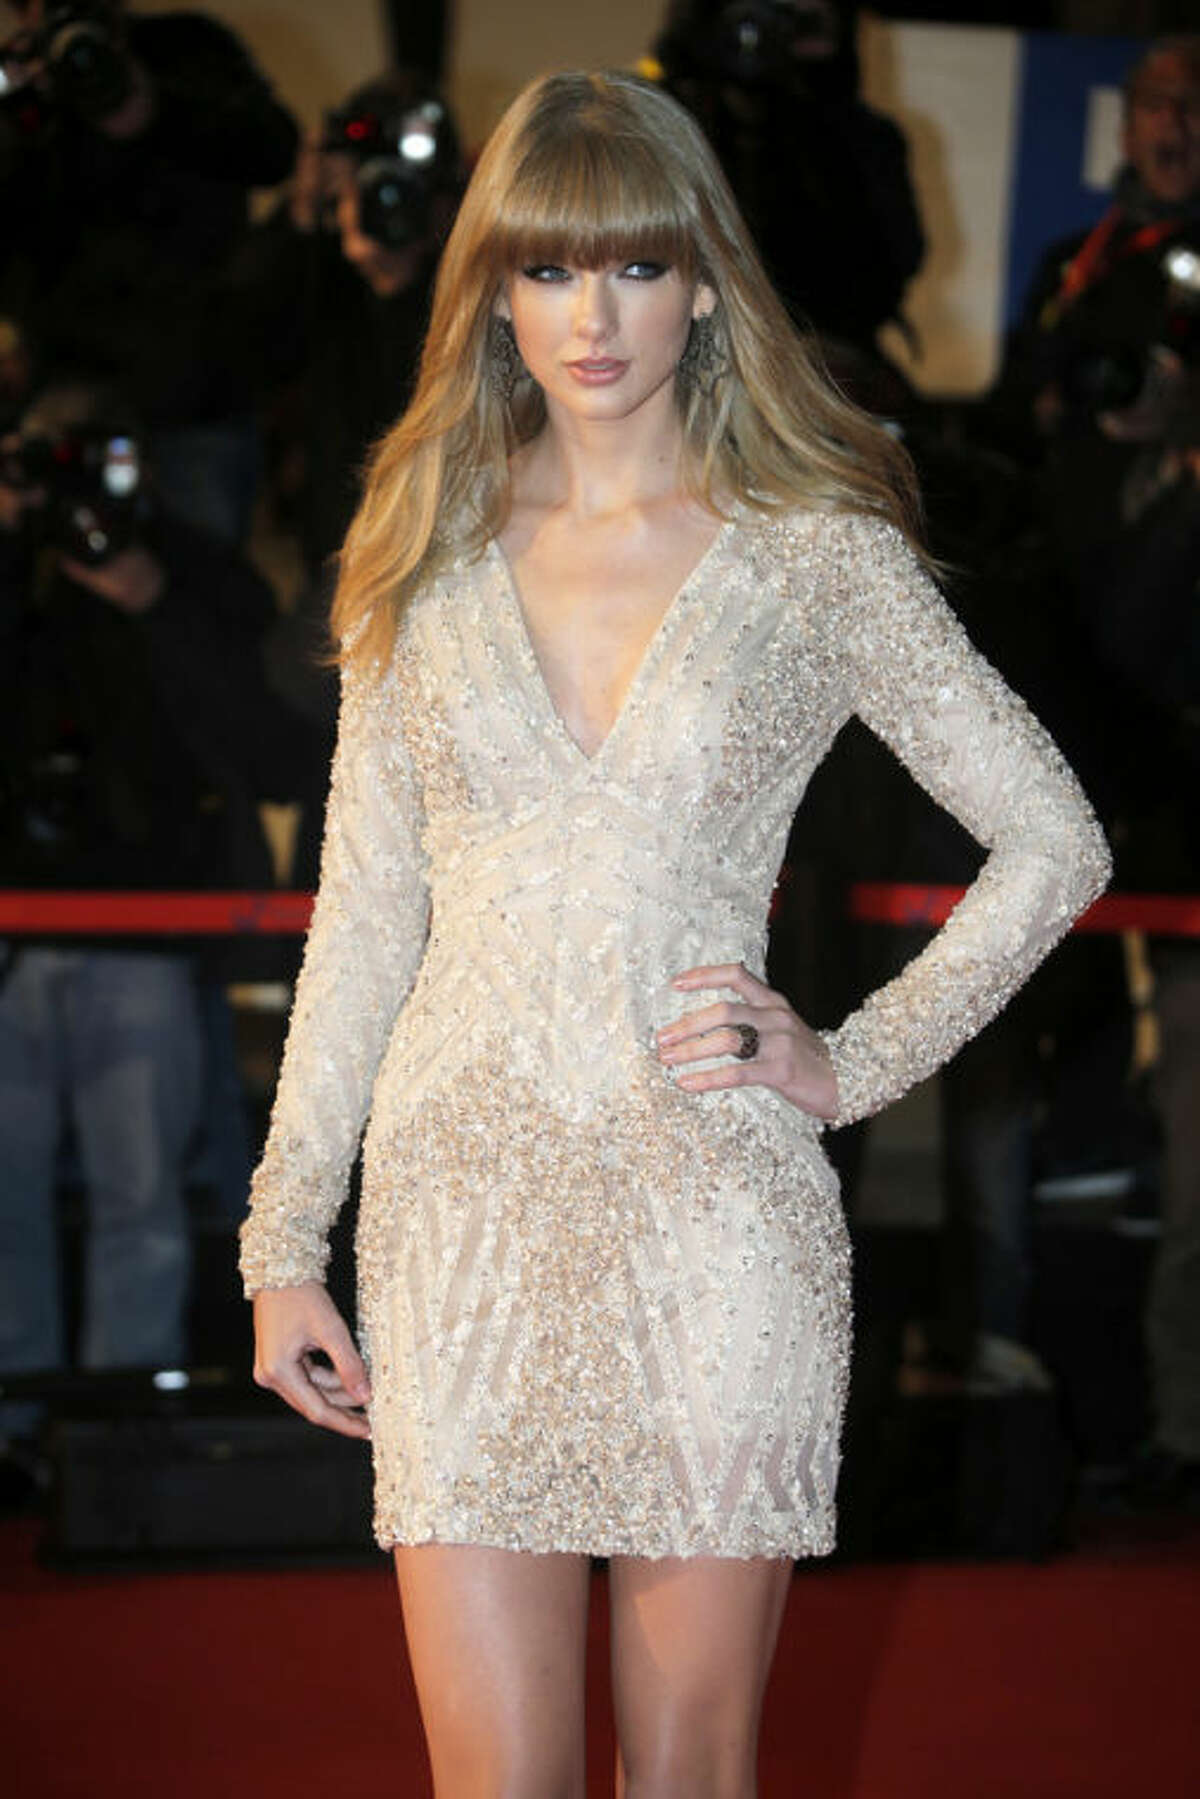 """FILE - This Jan. 26, 2013 file photo shows American singer-songwriter Taylor Swift at the Cannes festival palace, to take part in the NRJ Music awards ceremony in Cannes, southeastern France. Swift says you can expect some of her bolder choices of late, from her music to her new, sexier image, to be incorporated in her upcoming tour. Swift kicks off her worldwide tour in Omaha, Neb., next month in support of her latest album, ?""""Red.?"""" (AP Photo/Lionel Cironneau, file)"""